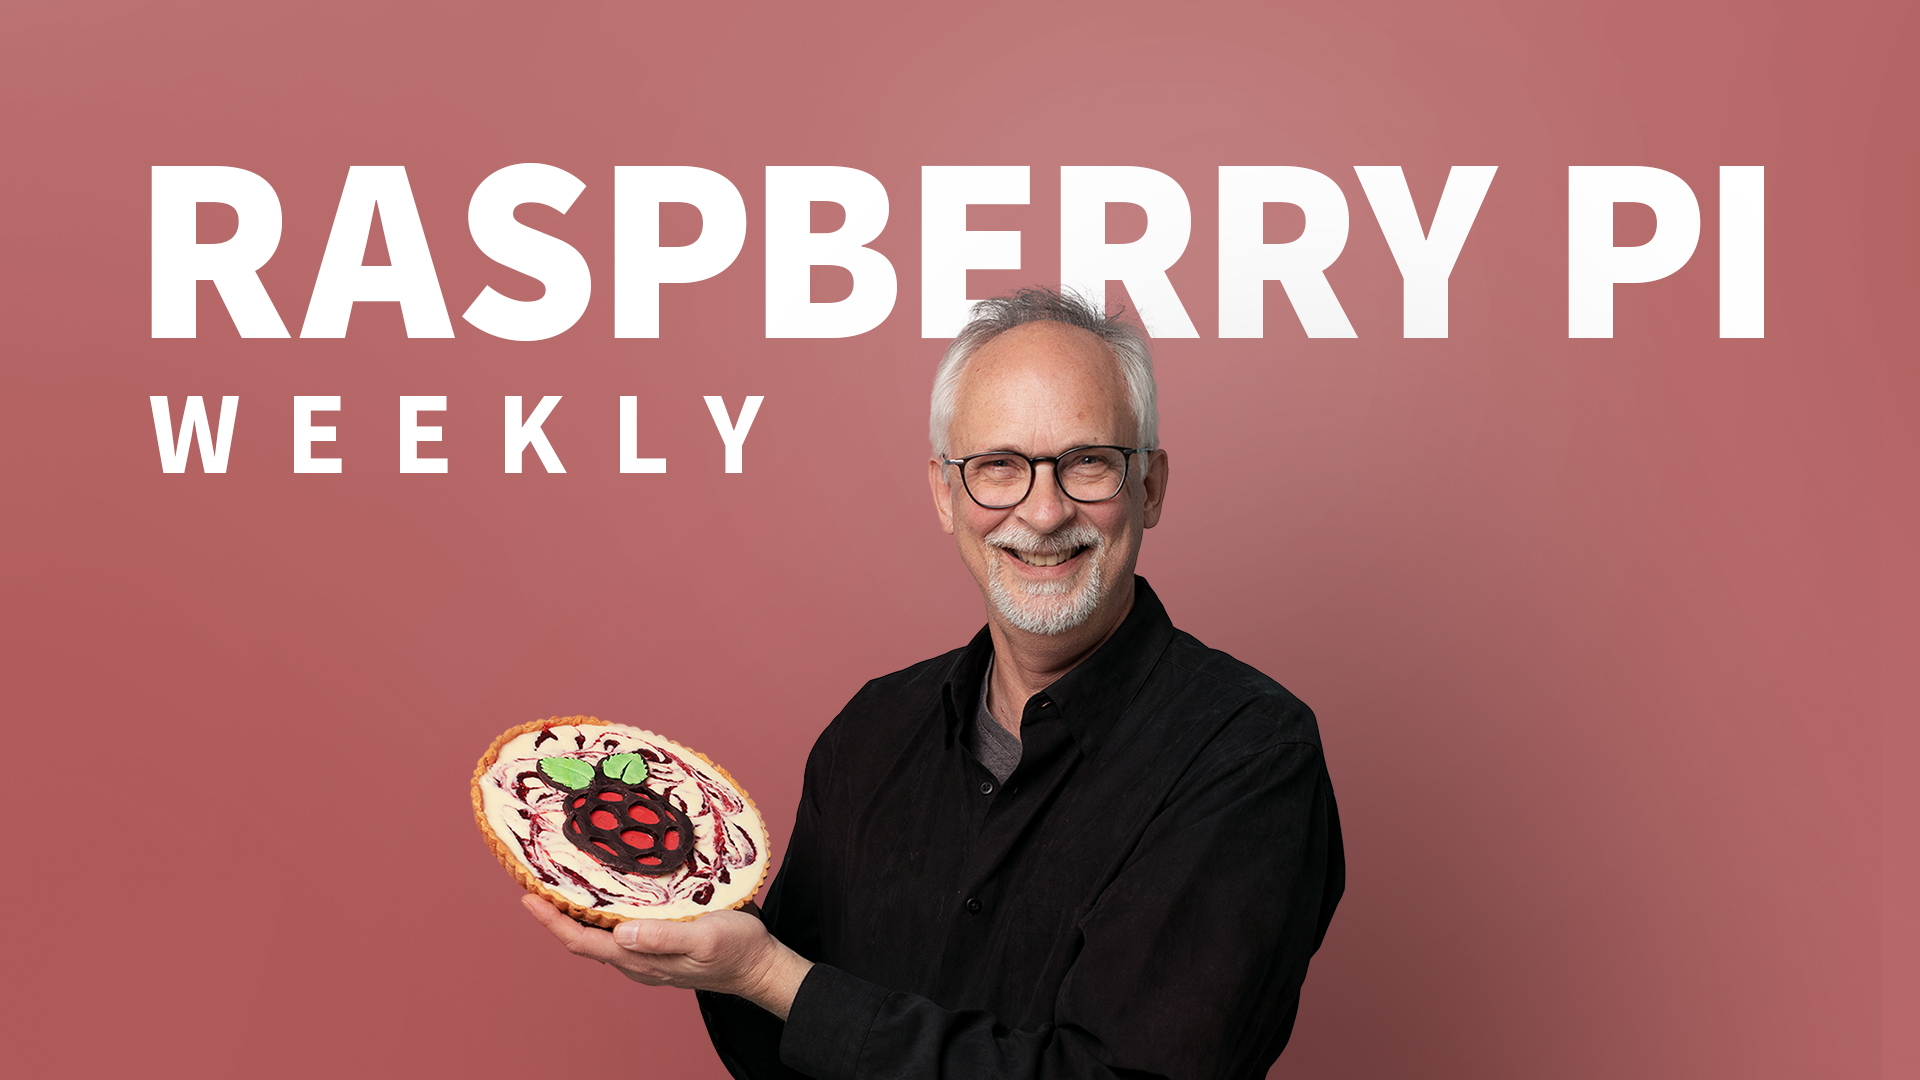 Rasperry Pi Weekly: Raspberry Pi Weekly